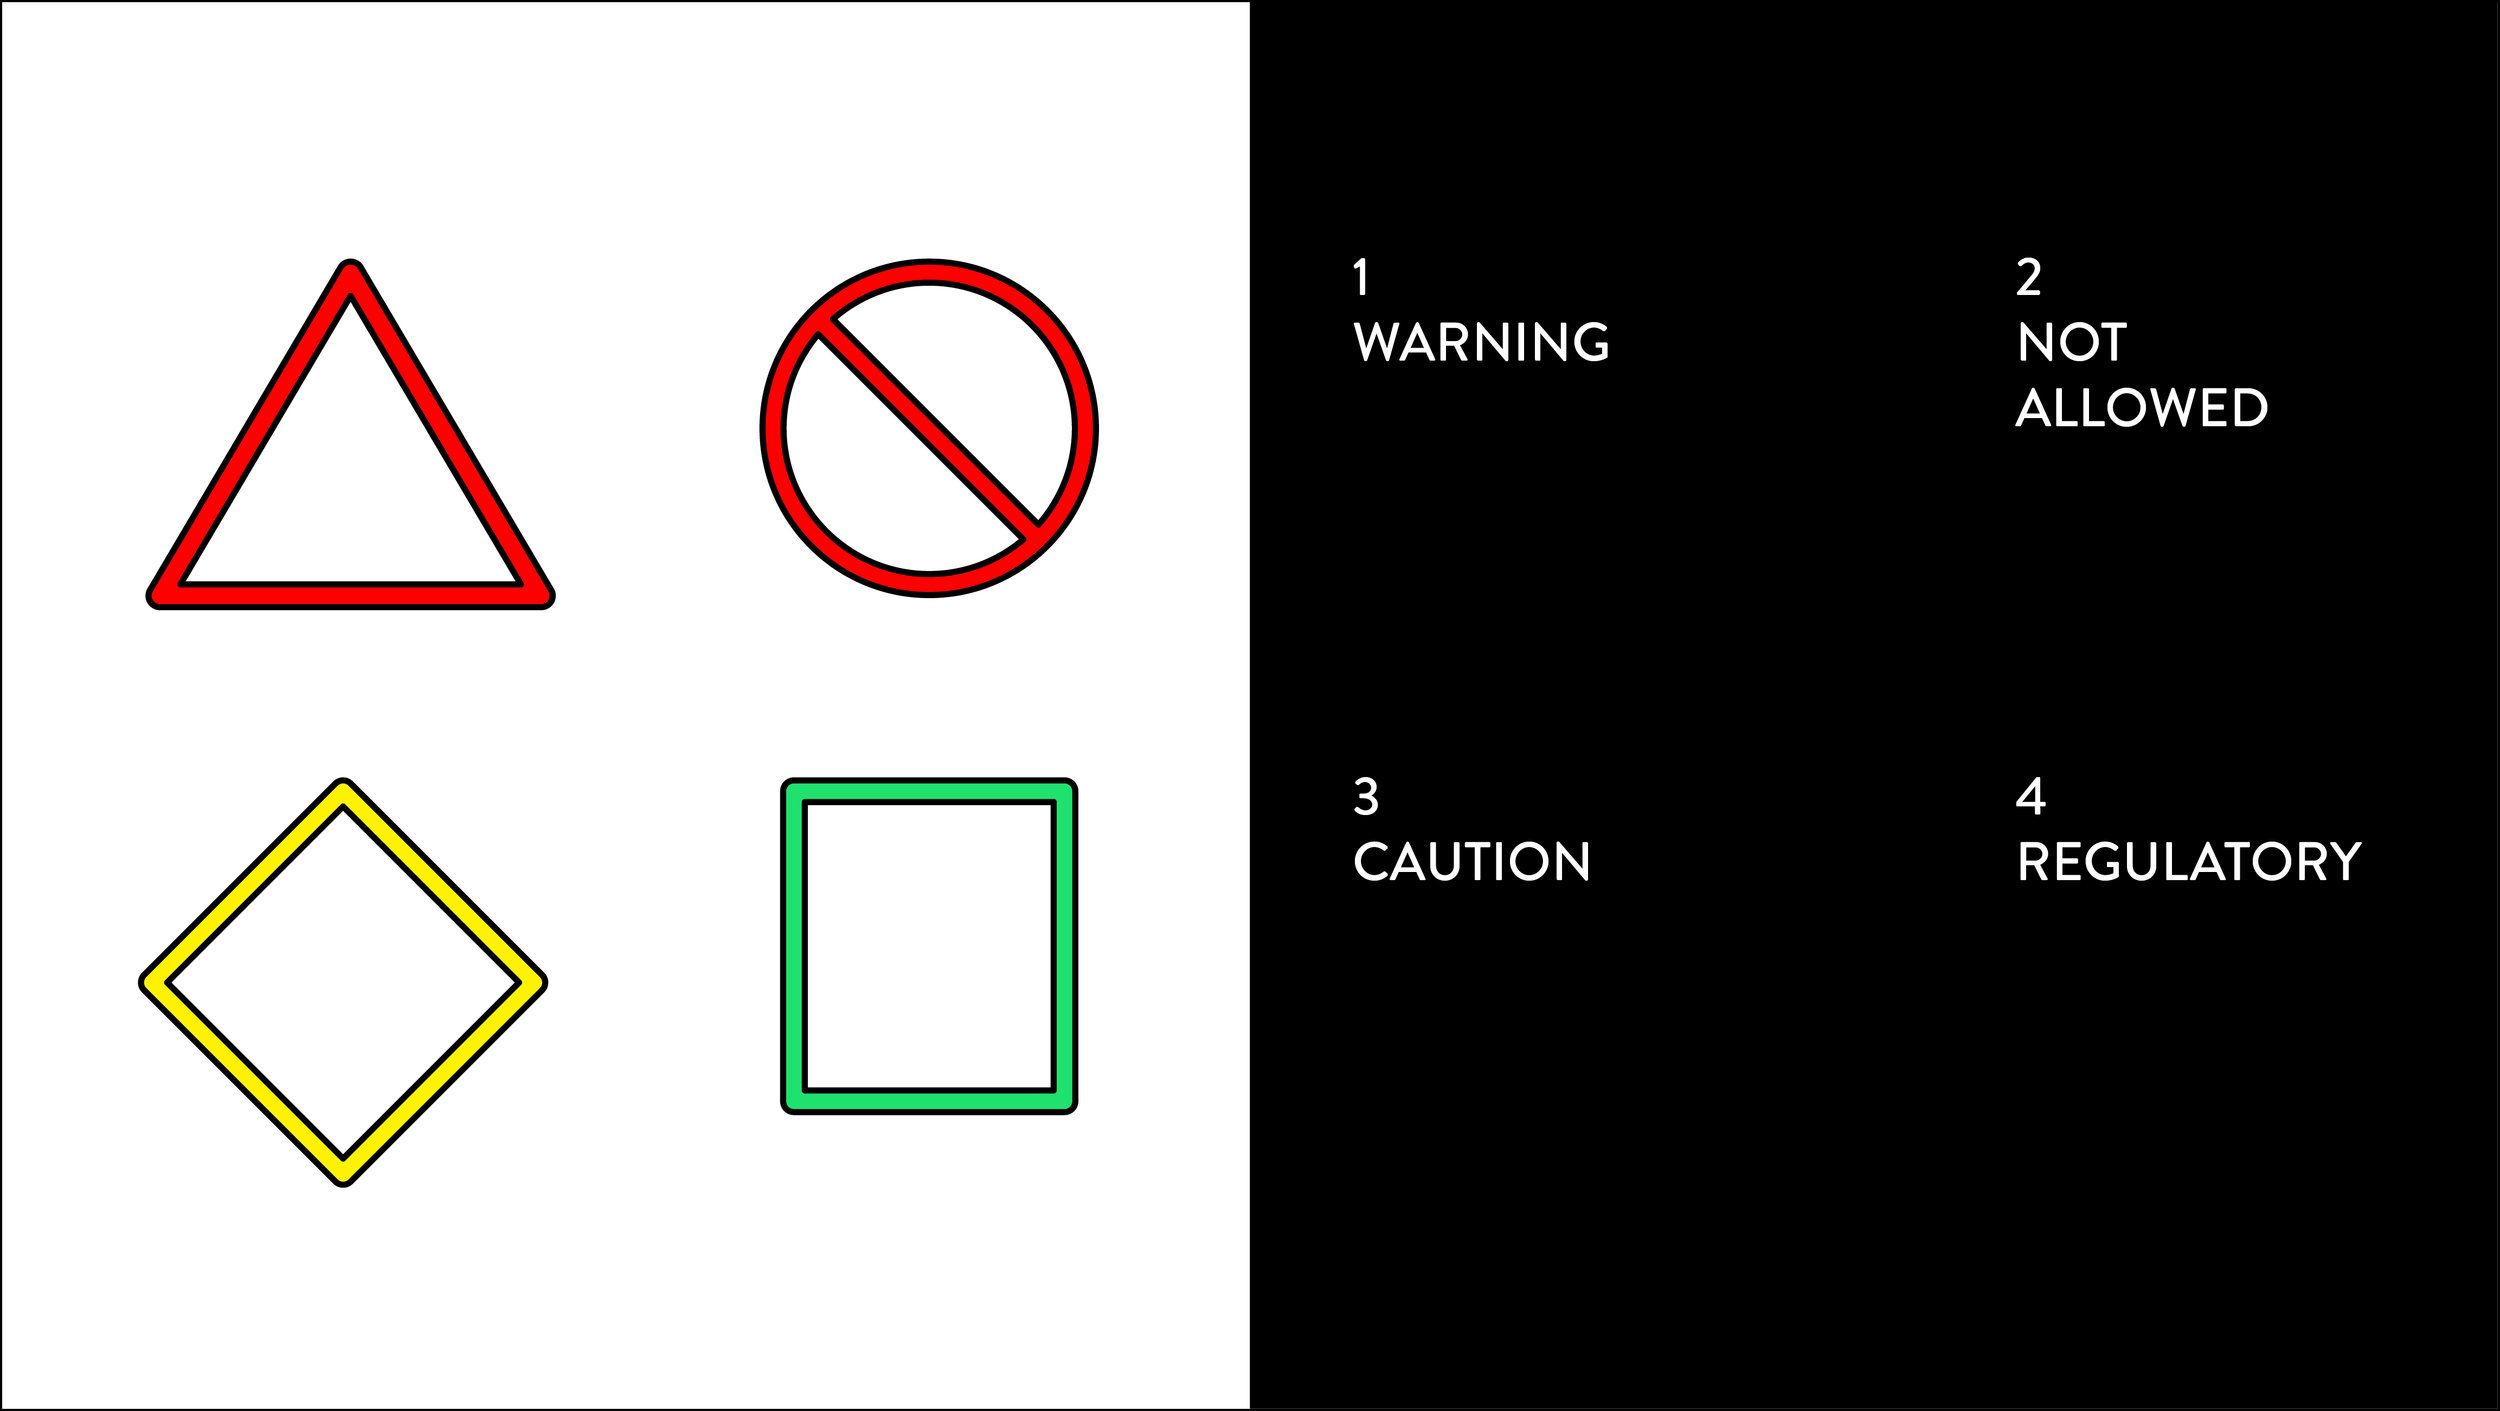 newhazards-icons-final-41.jpg